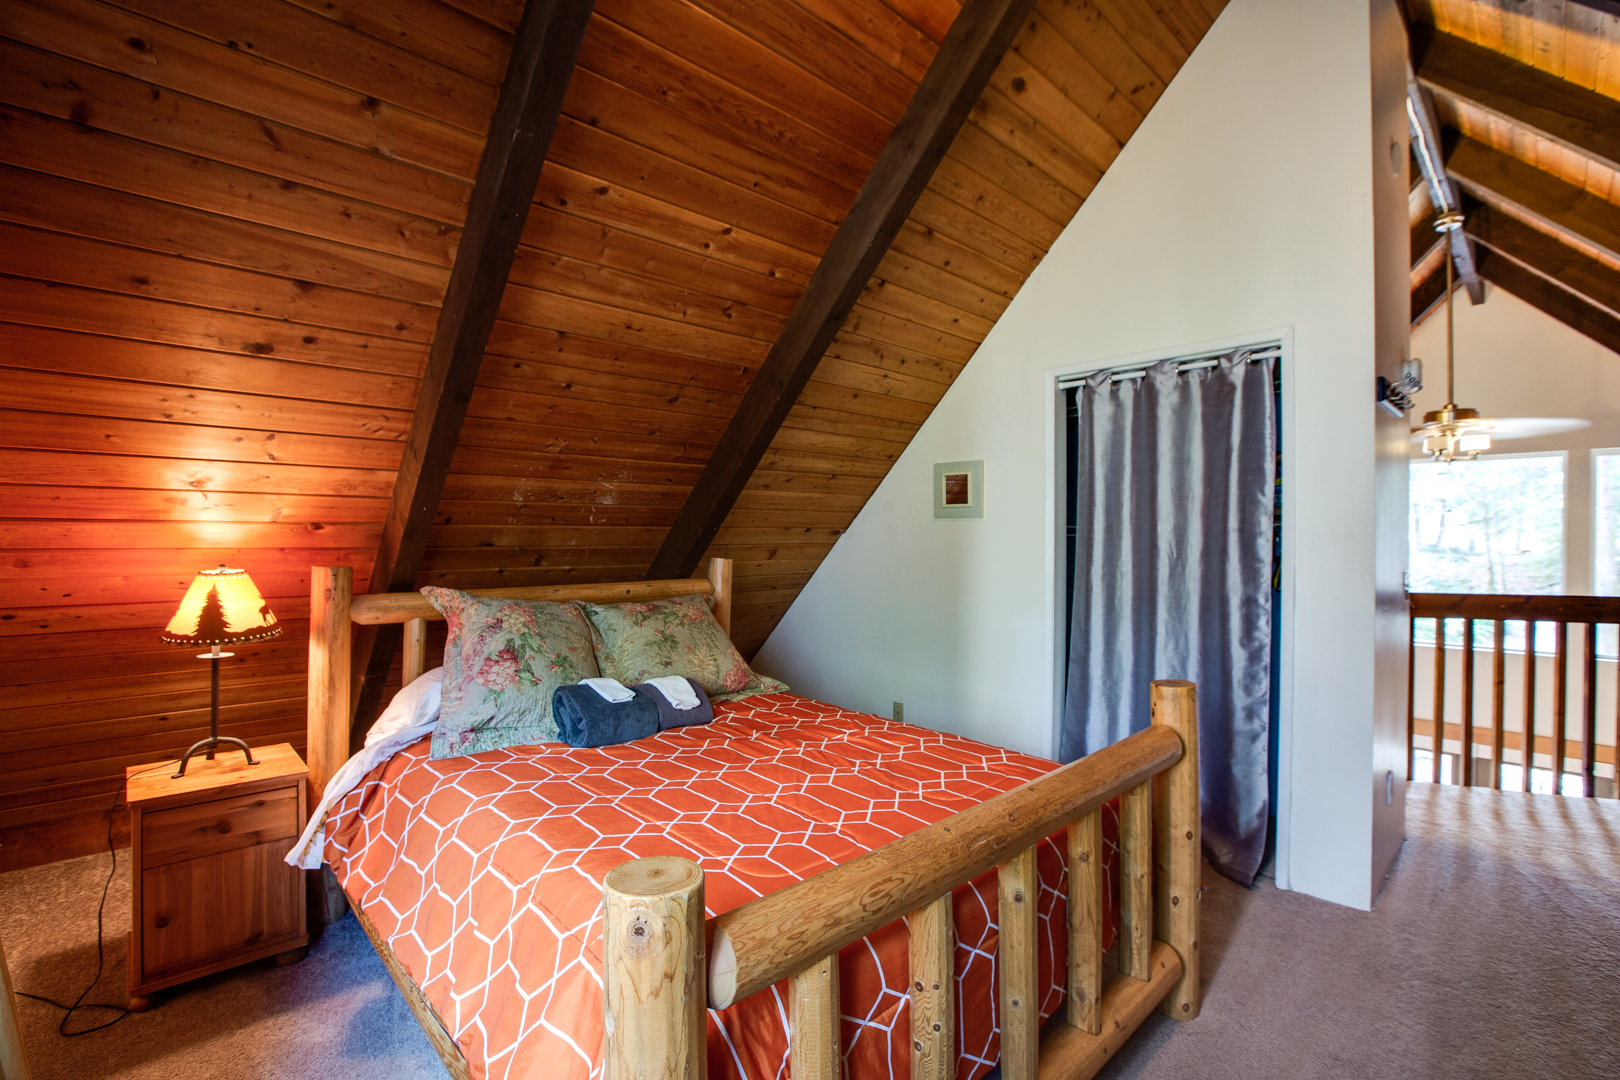 Queen bed in loft area